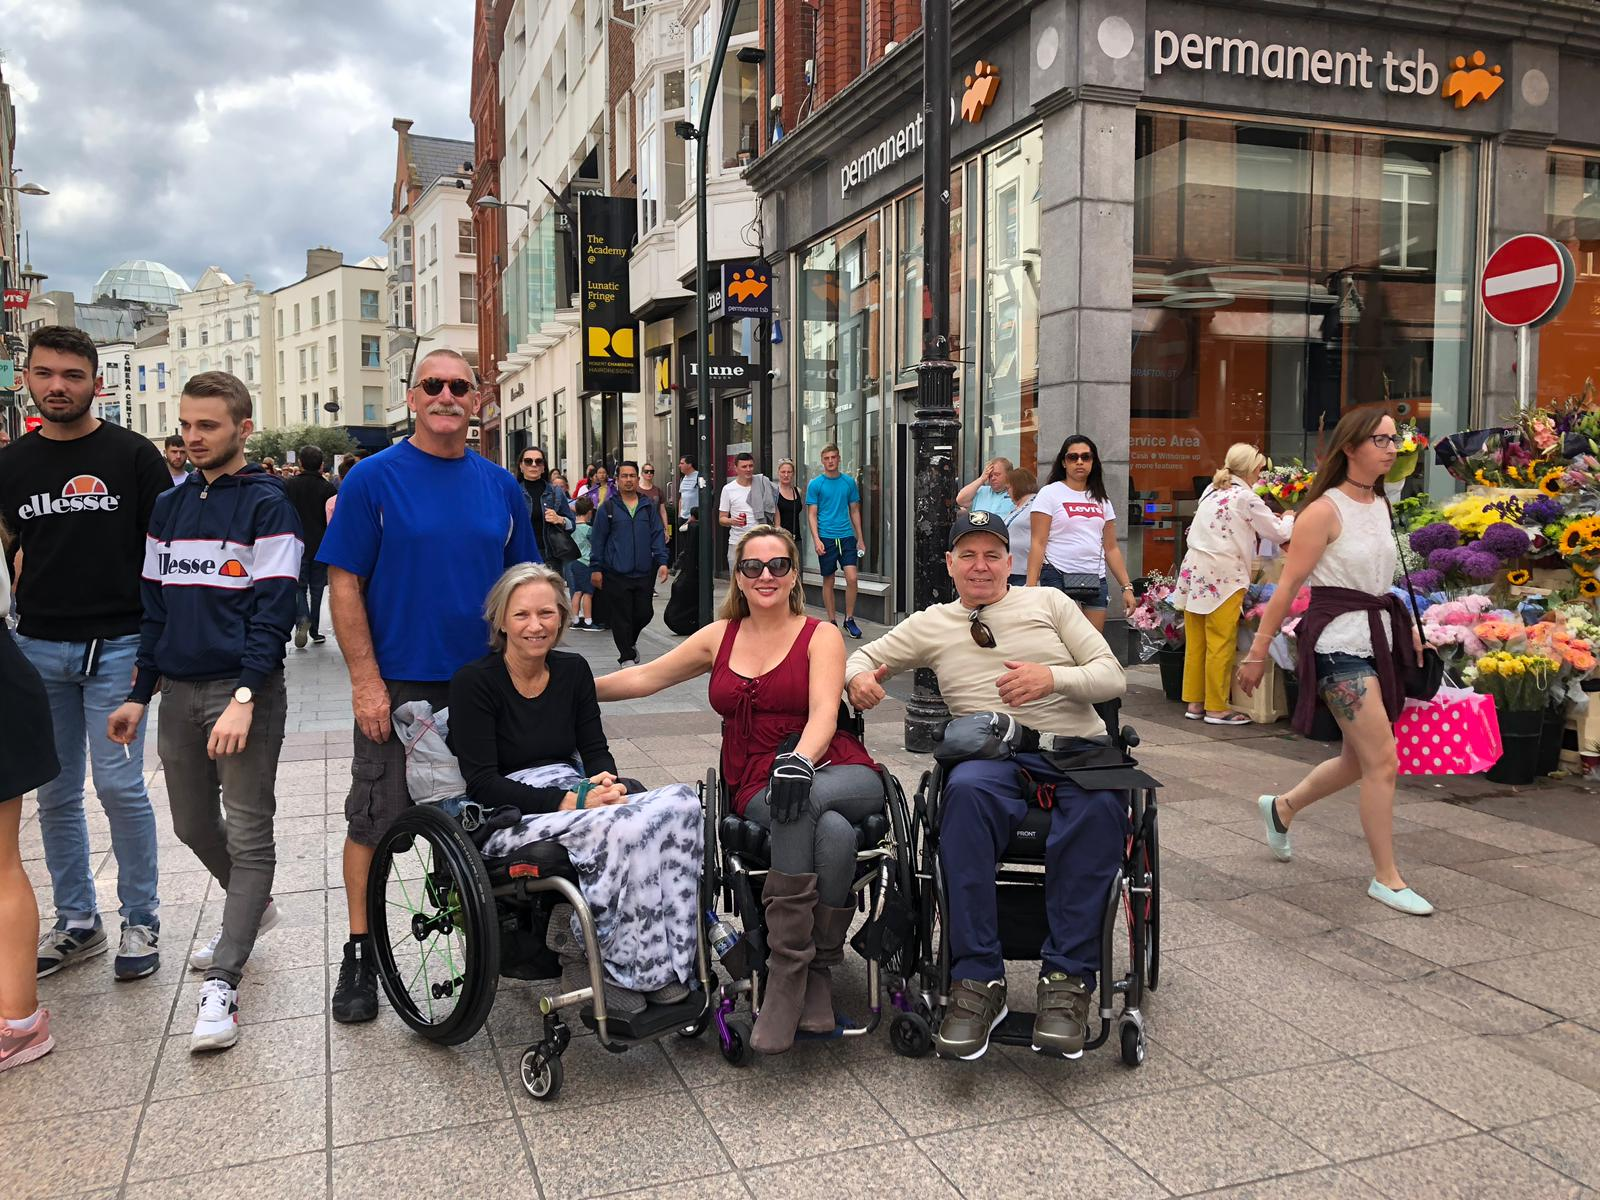 d0f1196a a683 4a67 80f8 4fc43ef9c9e0 - PUSHLiving Ireland 2019: Day 2 & 3 Exploring Dublin